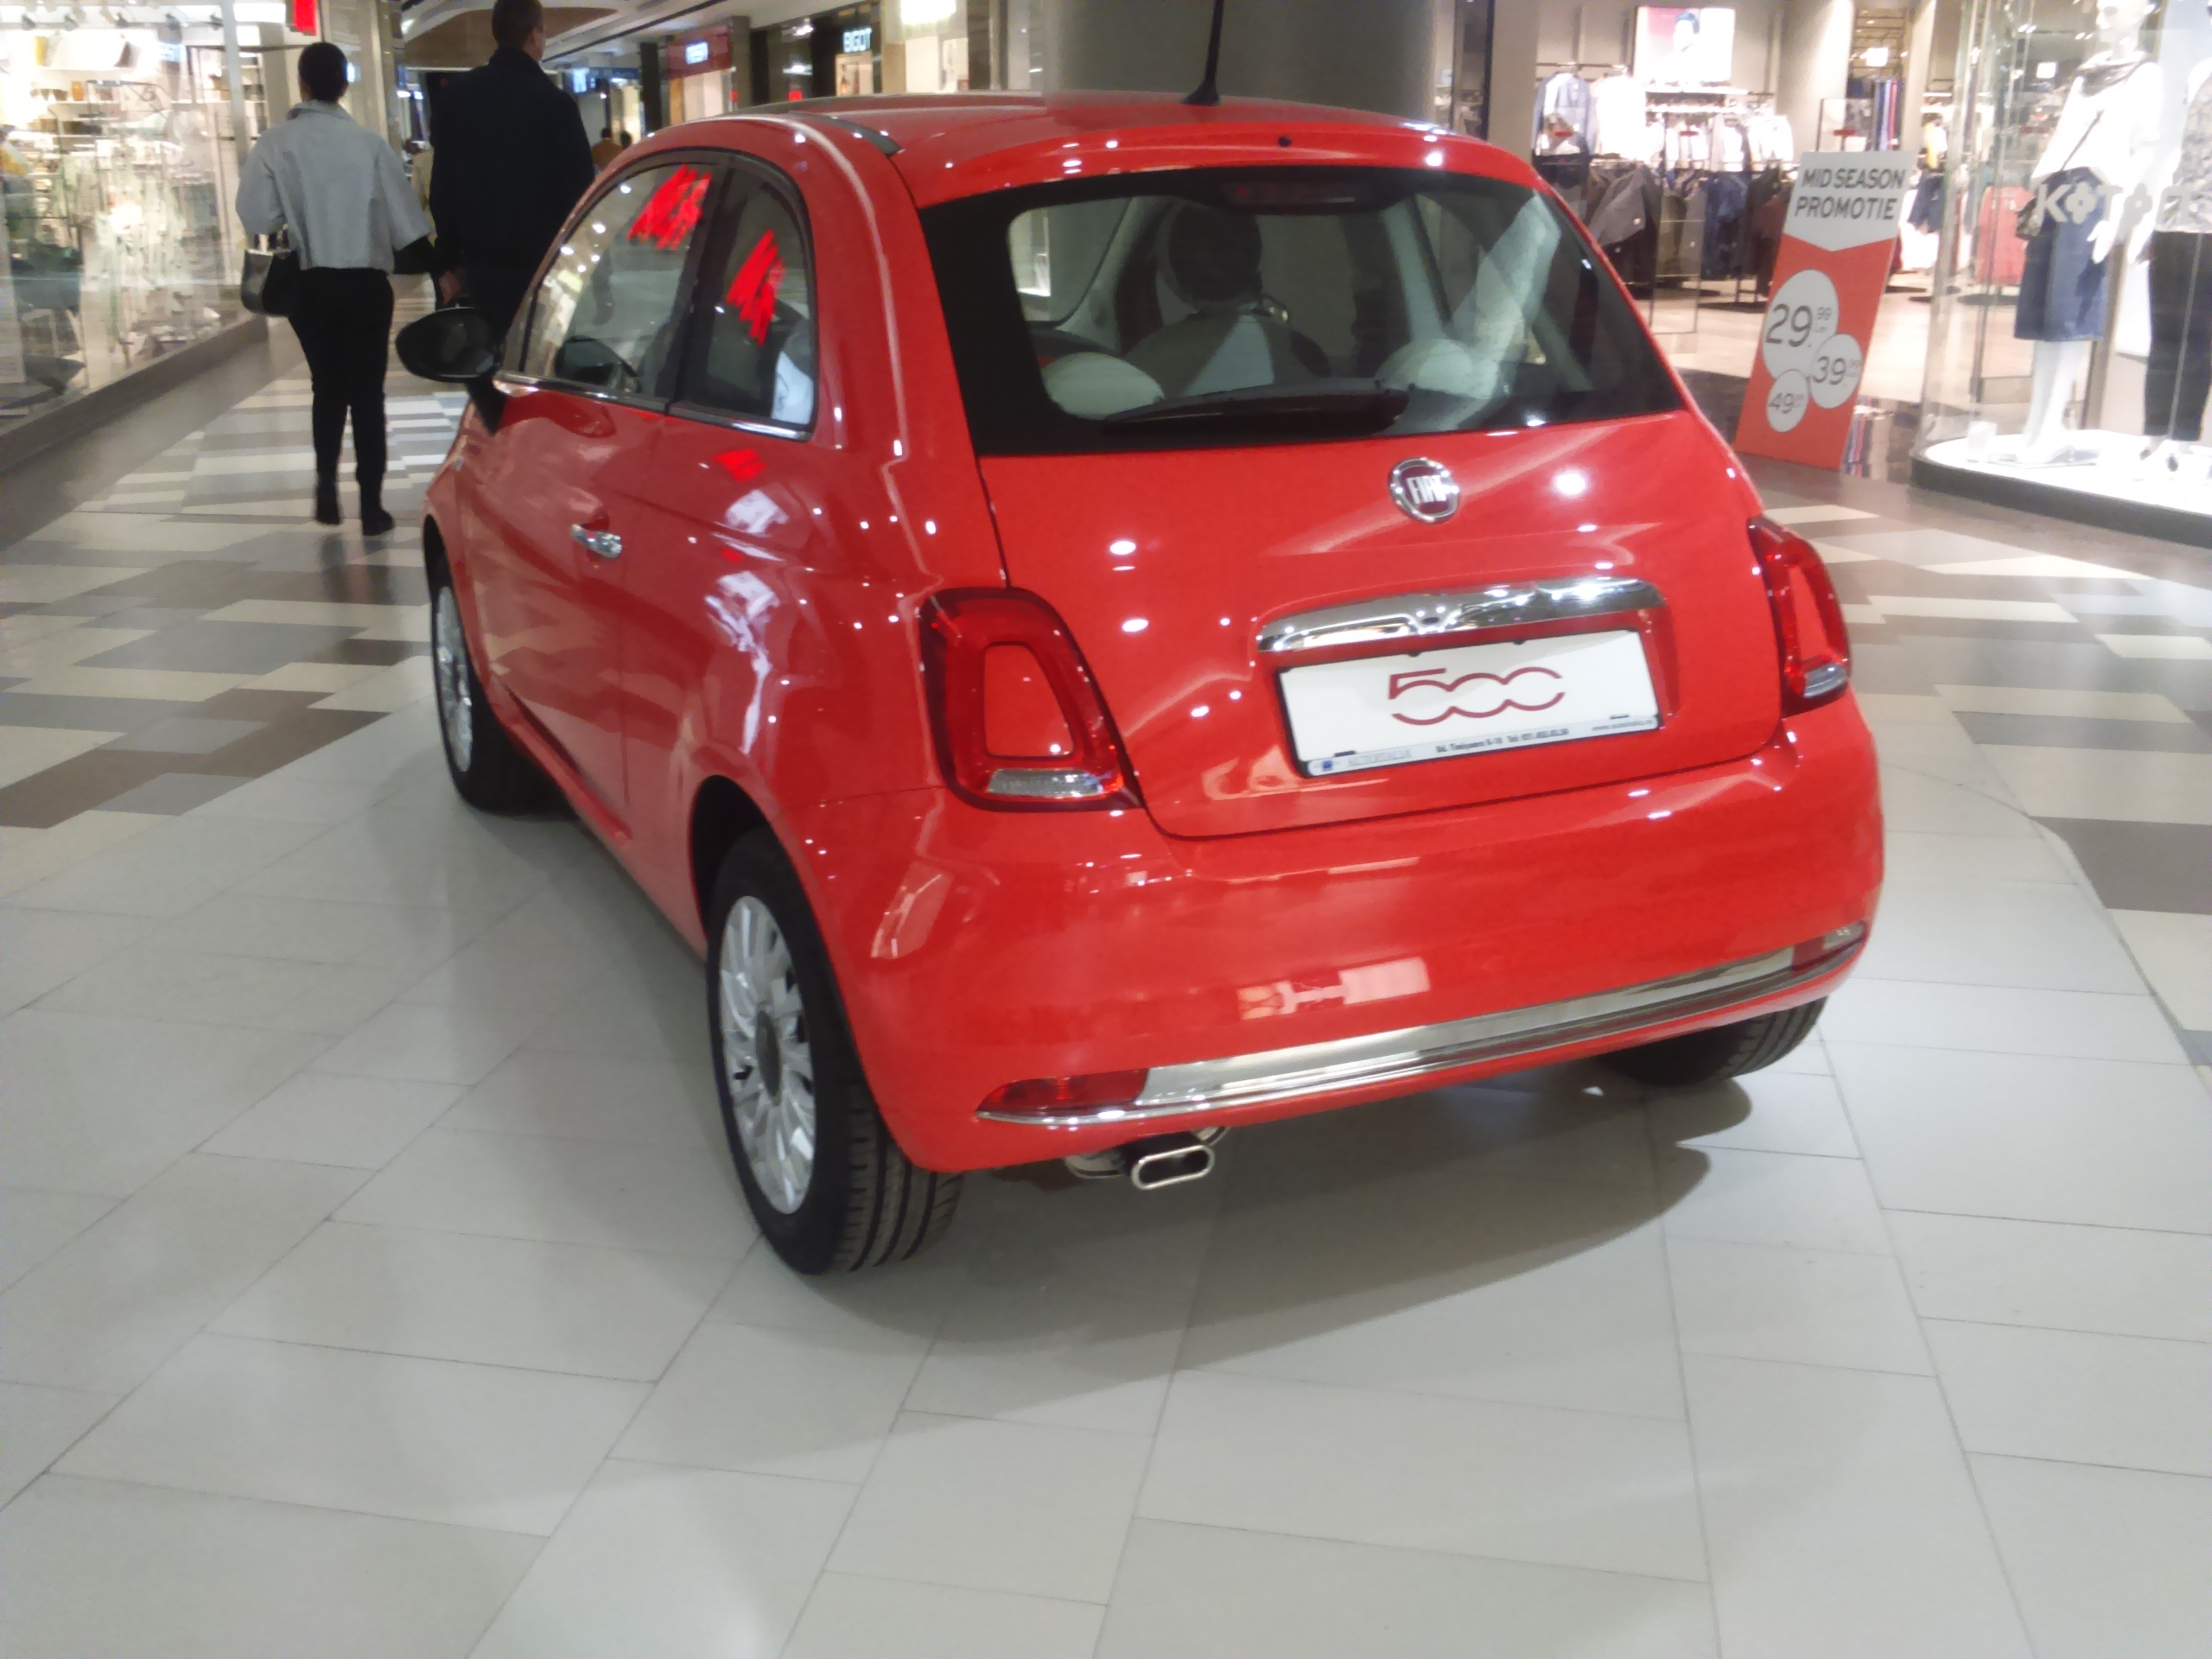 images and amazon fiat specs reviews image com back dp product vehicles